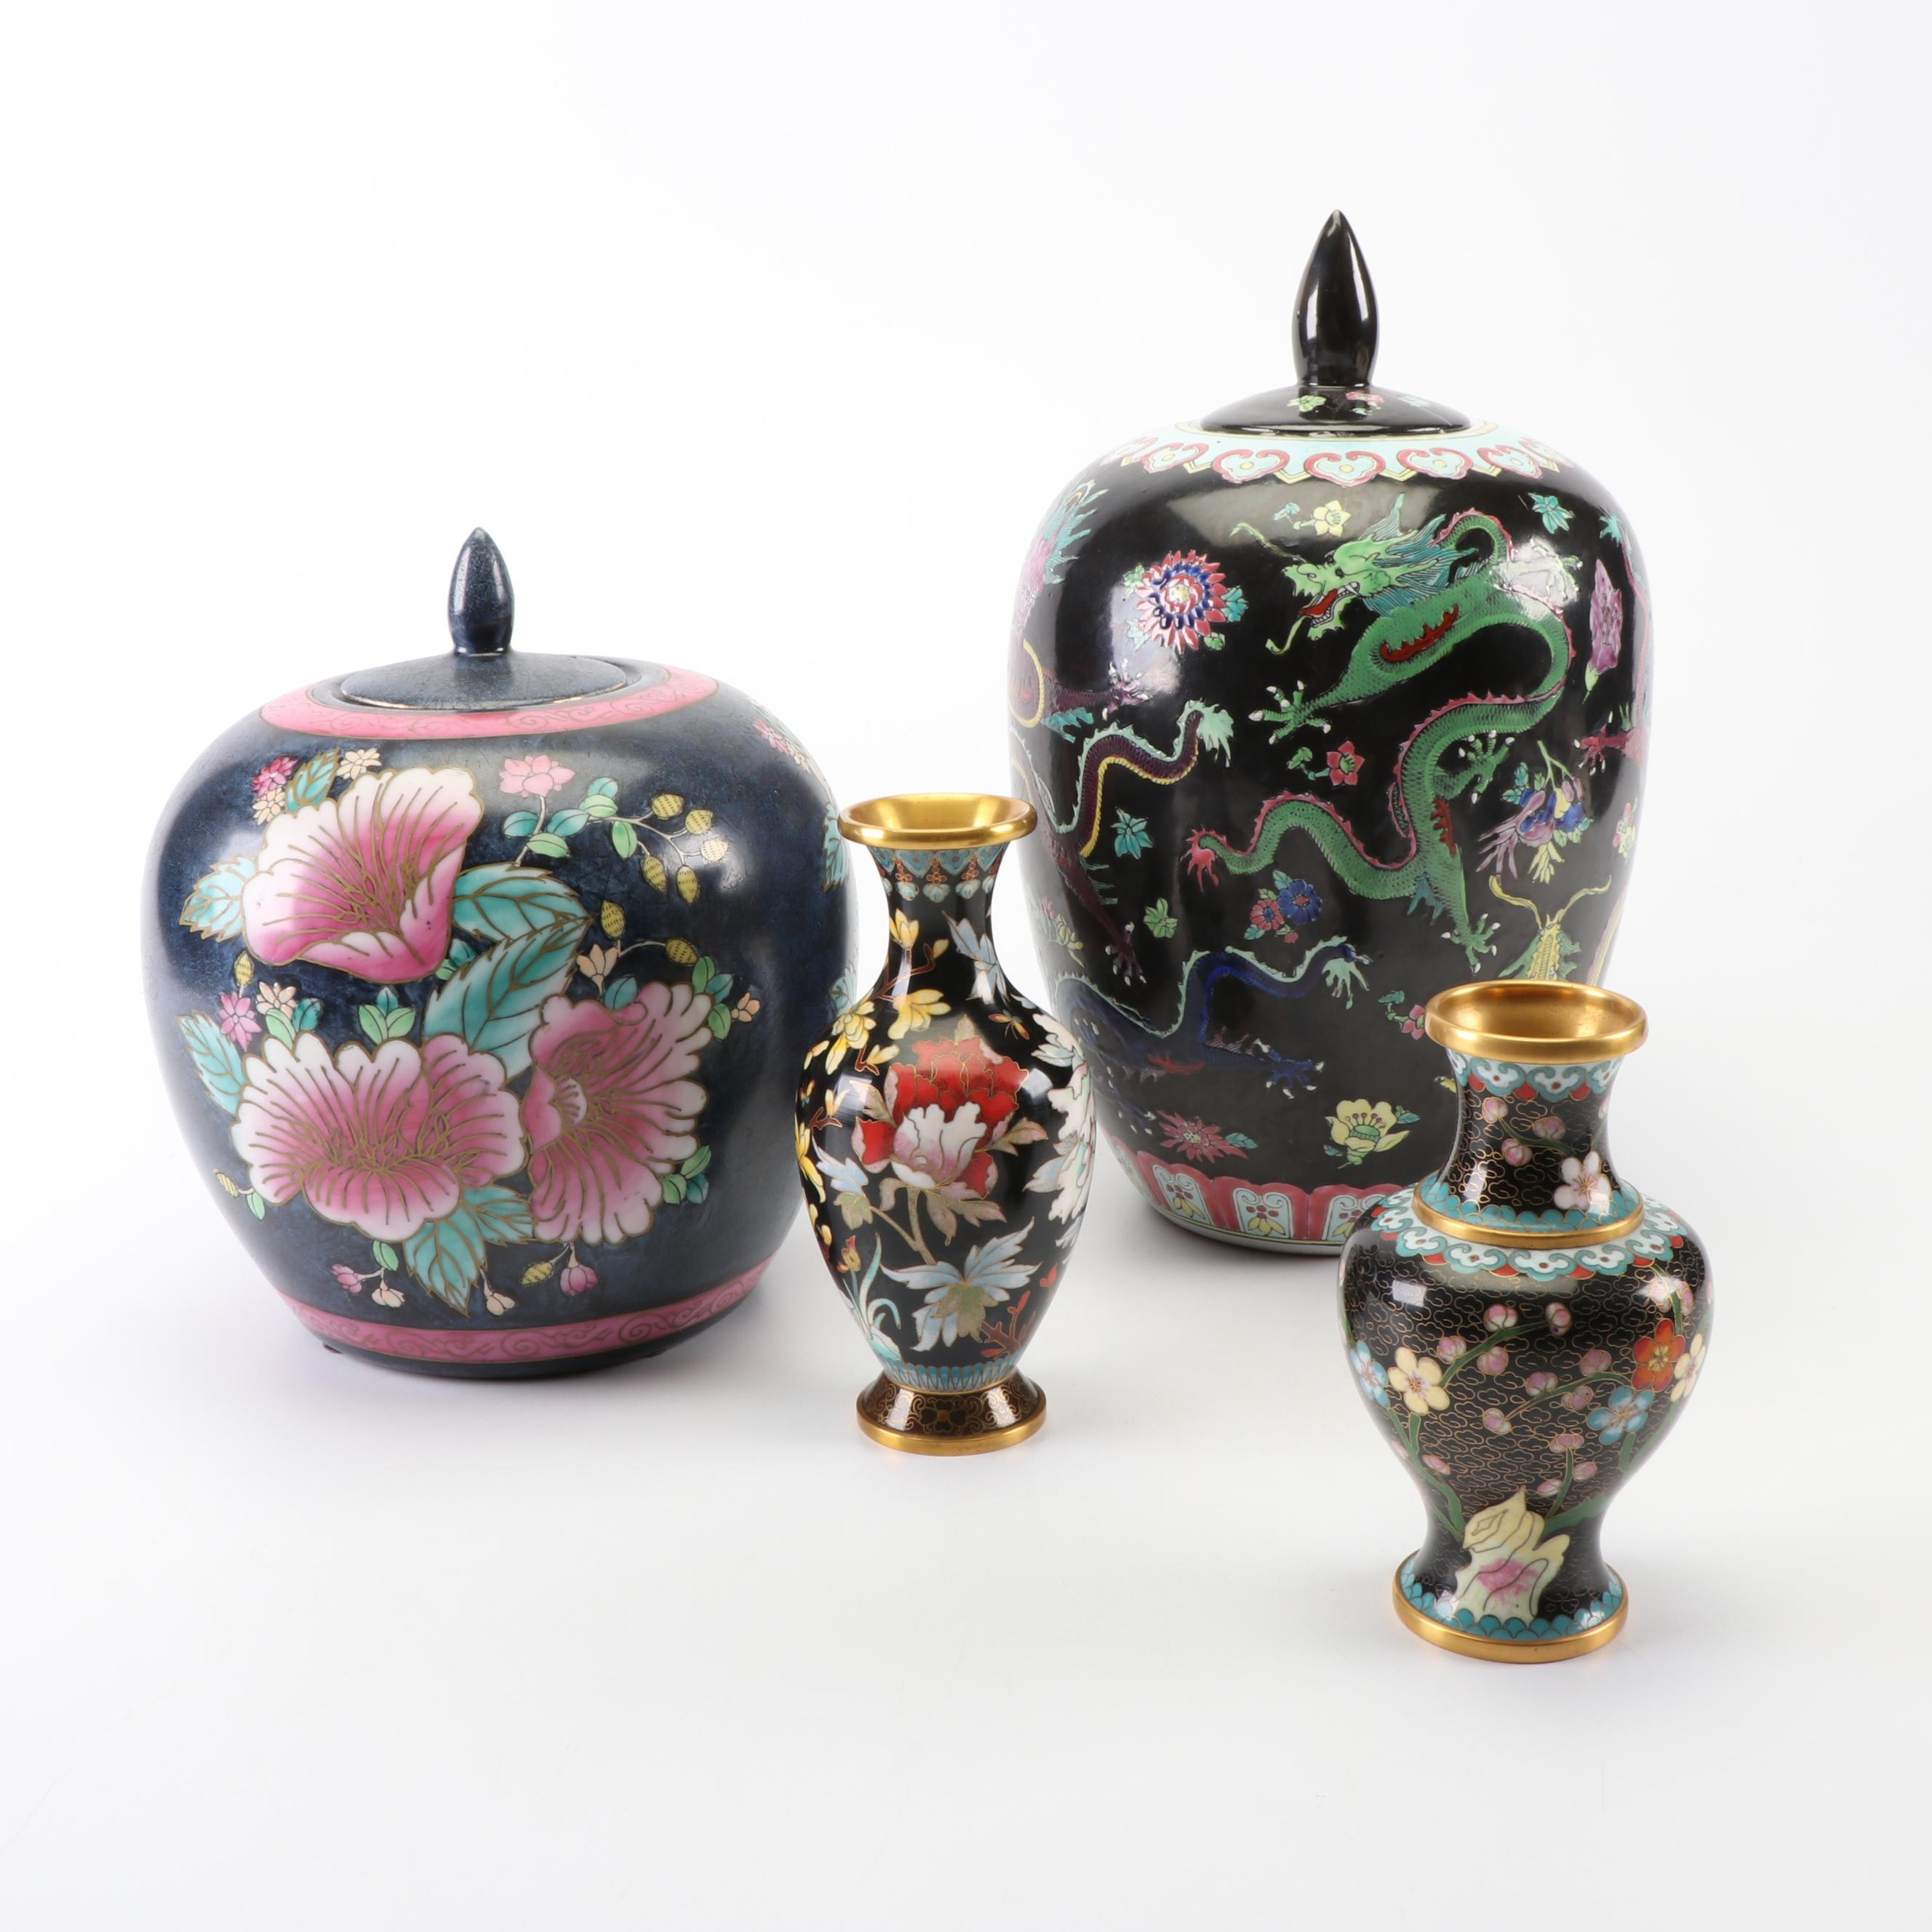 Chinese Hand-Painted Ceramic Ginger Jars and Cloisonné Vases